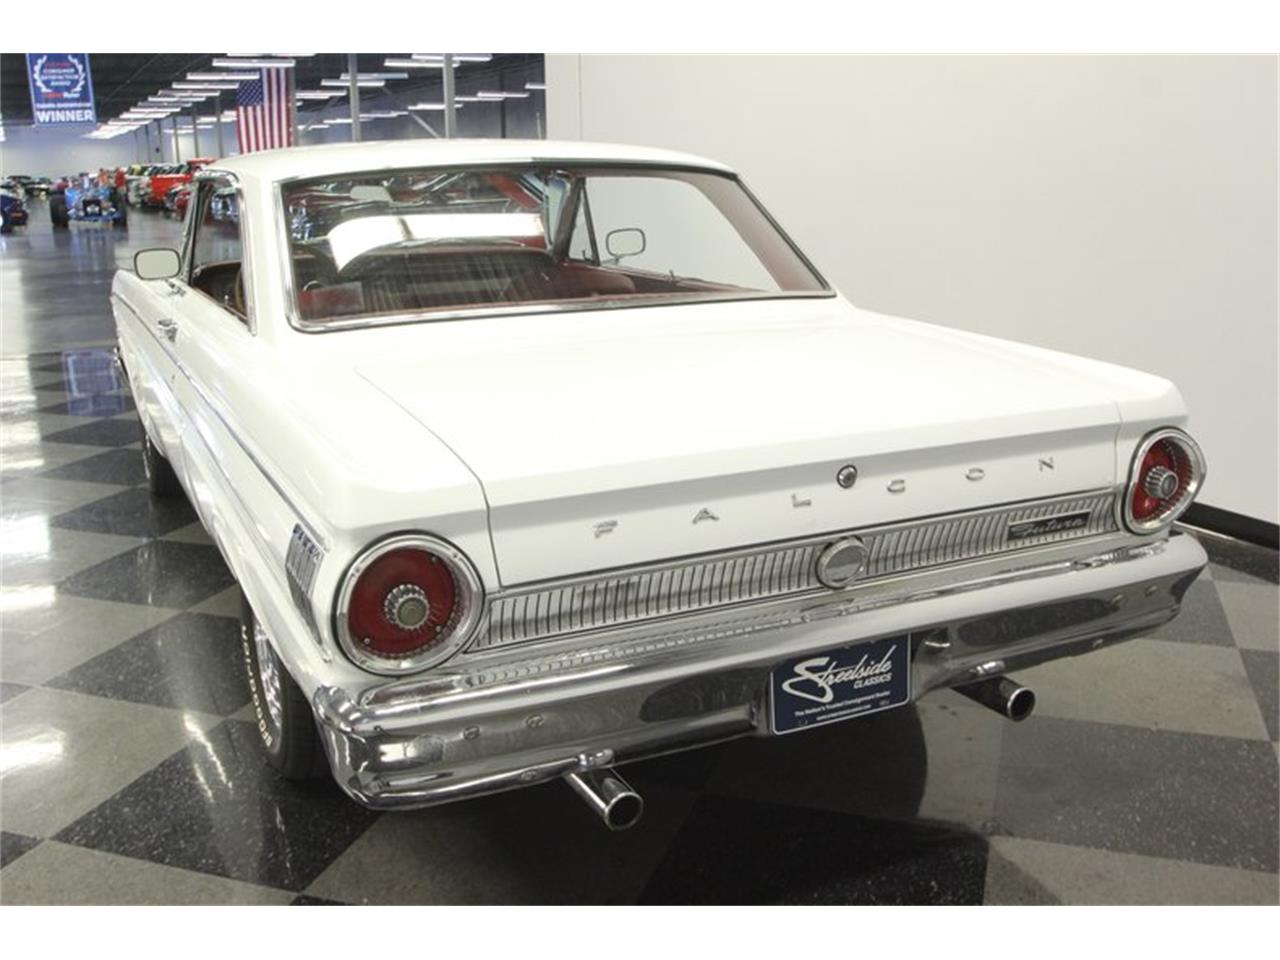 Large Picture of '64 Ford Falcon located in Florida - $18,995.00 Offered by Streetside Classics - Tampa - Q6M2